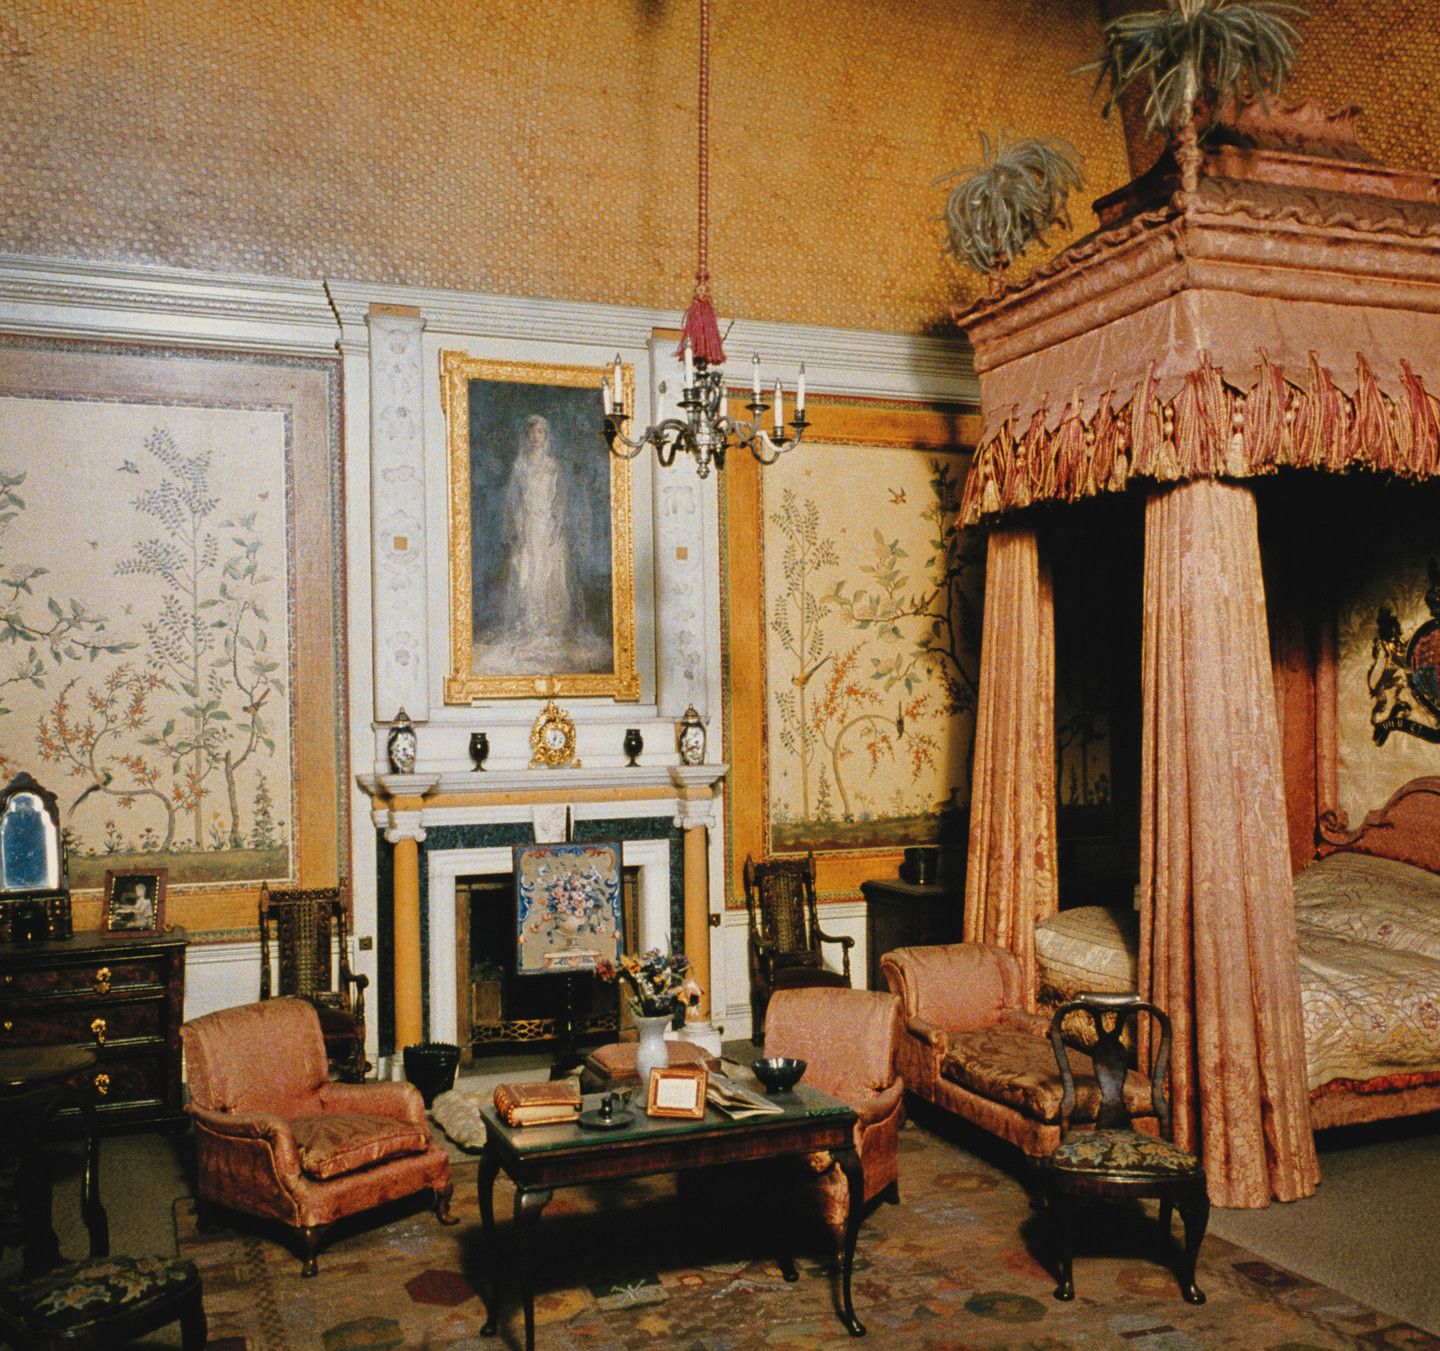 Queen Mary's Dolls' House 1921-24 made by SIR EDWIN LANDSEER LUTYENS (1869-1944). bedroom view